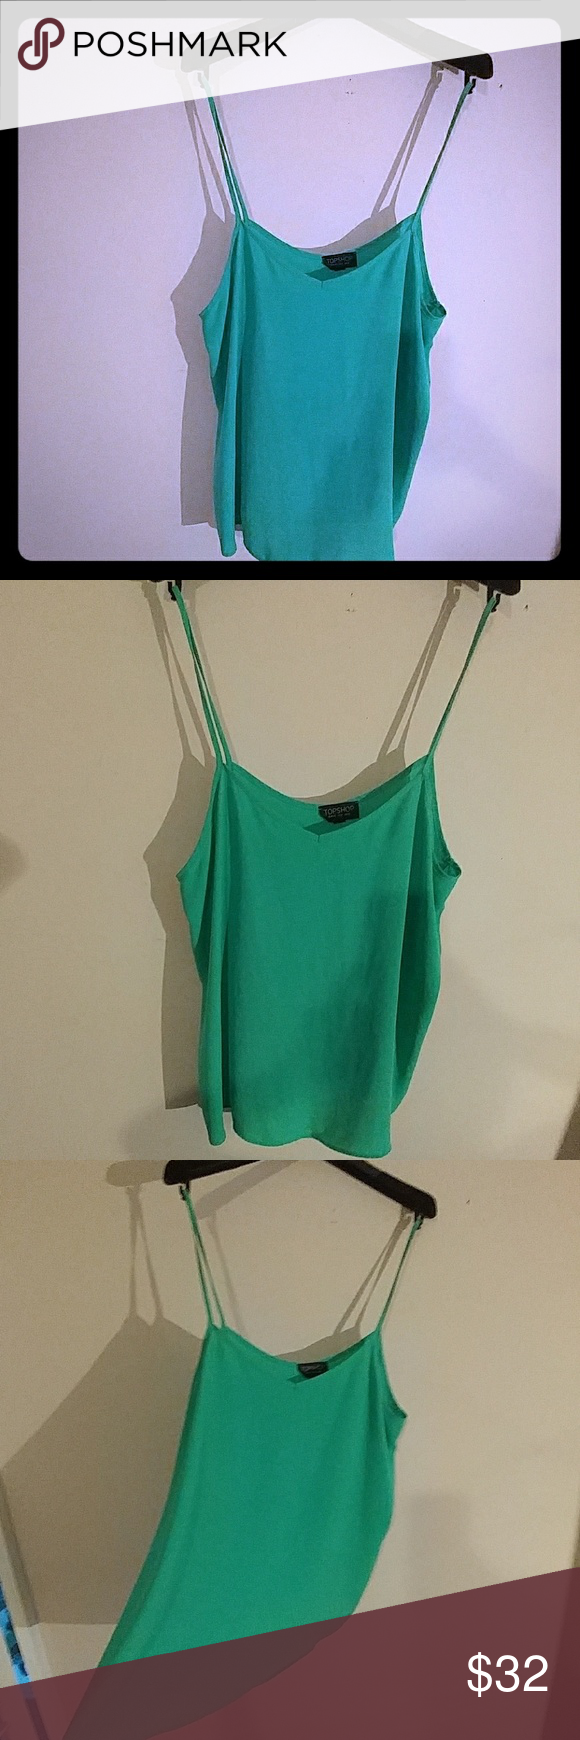 Green Summer camisol Super fun color.* I wore this a few times,looks fun with a different color or green bra underneath it with skinny straps Topshop Tops Tank Tops